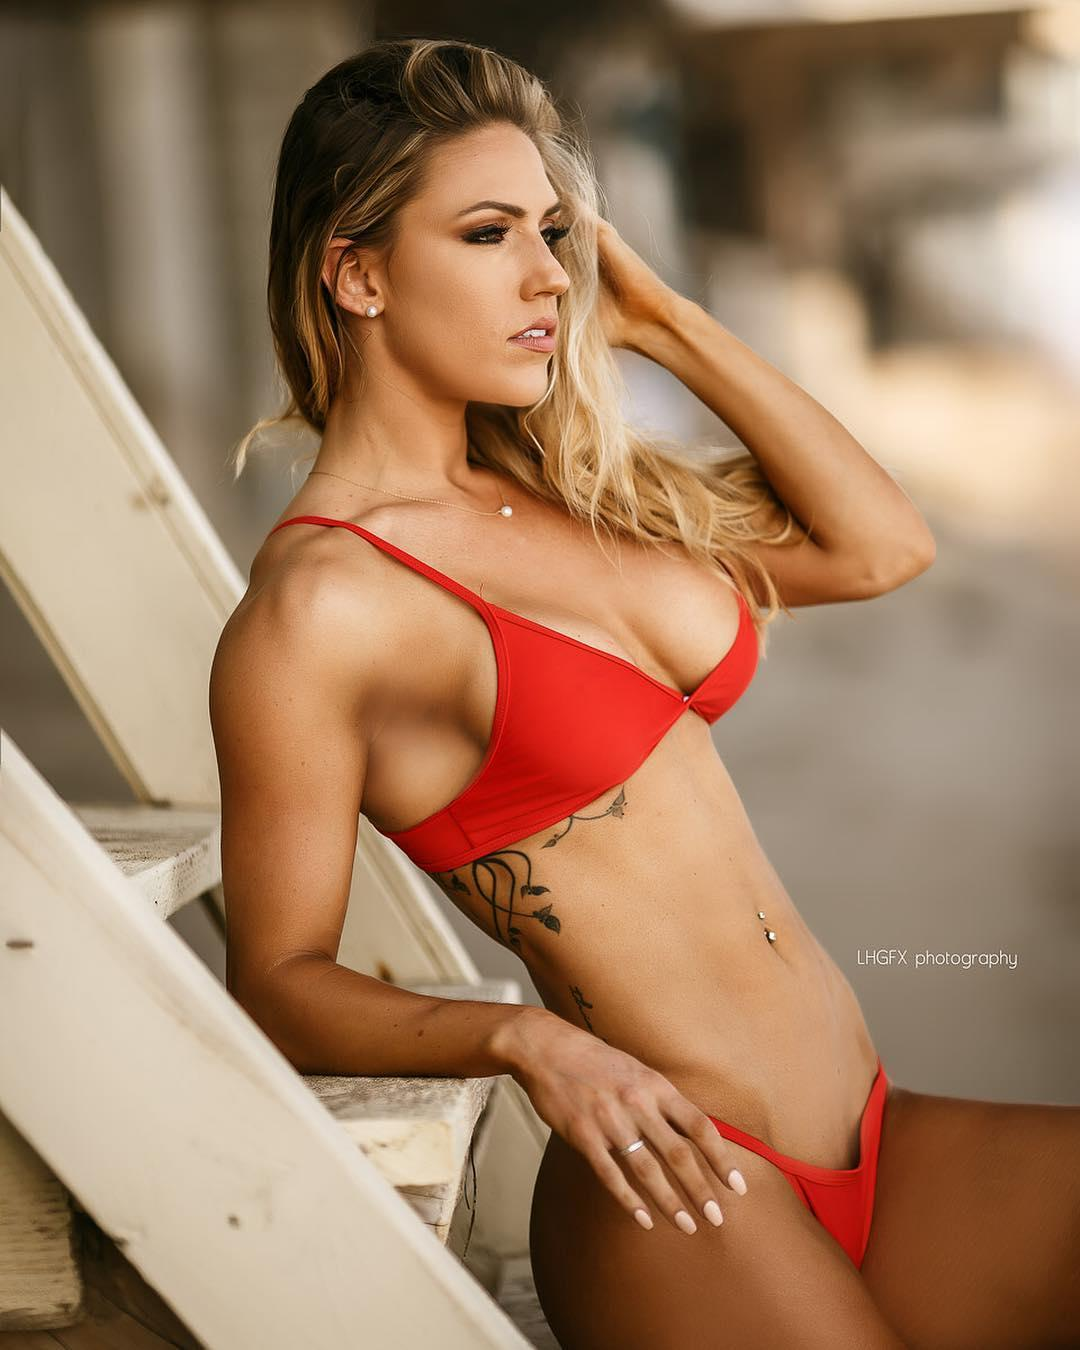 Courtney Gardner Muscles Sport Picture and Photo